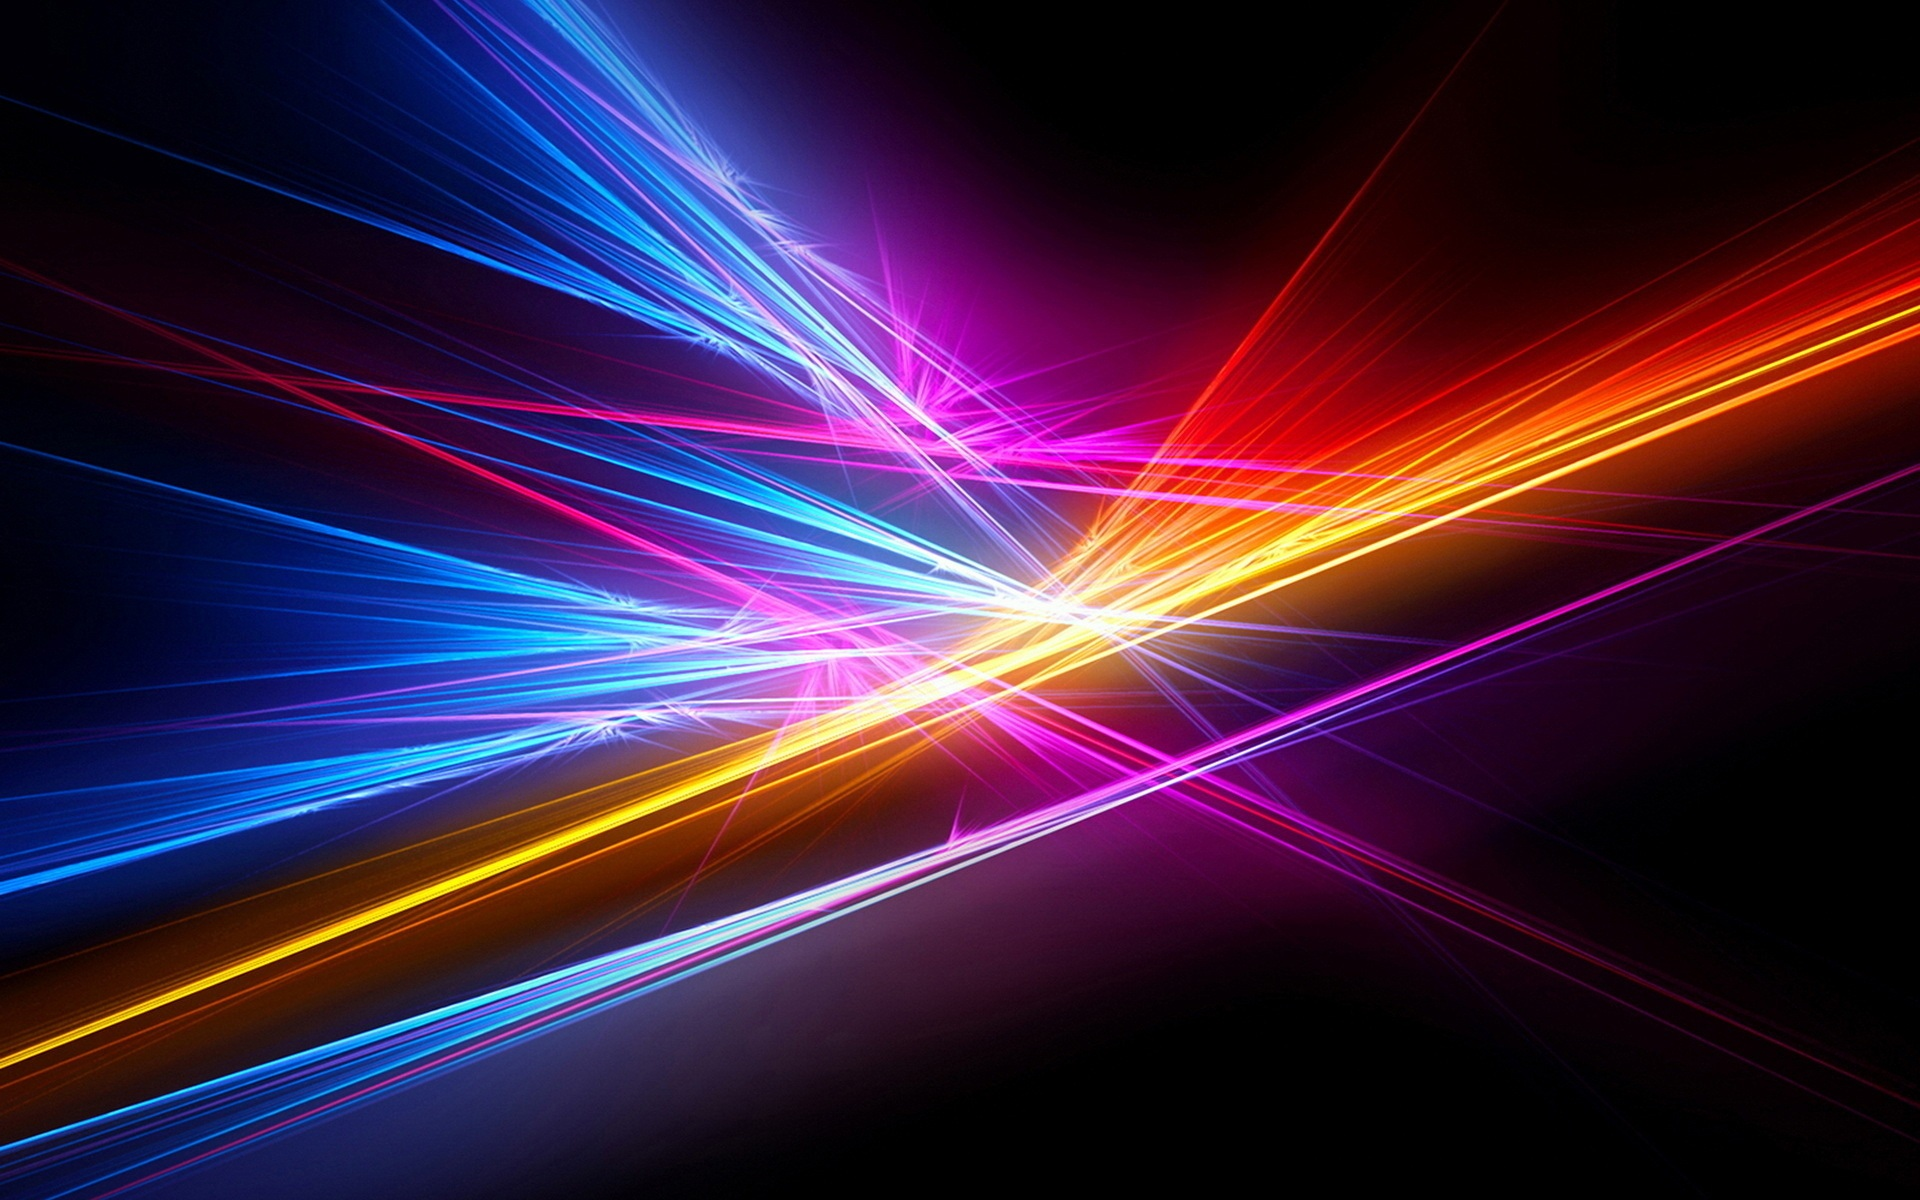 Download Cool Light Backgrounds pictures in high definition or 1920x1200